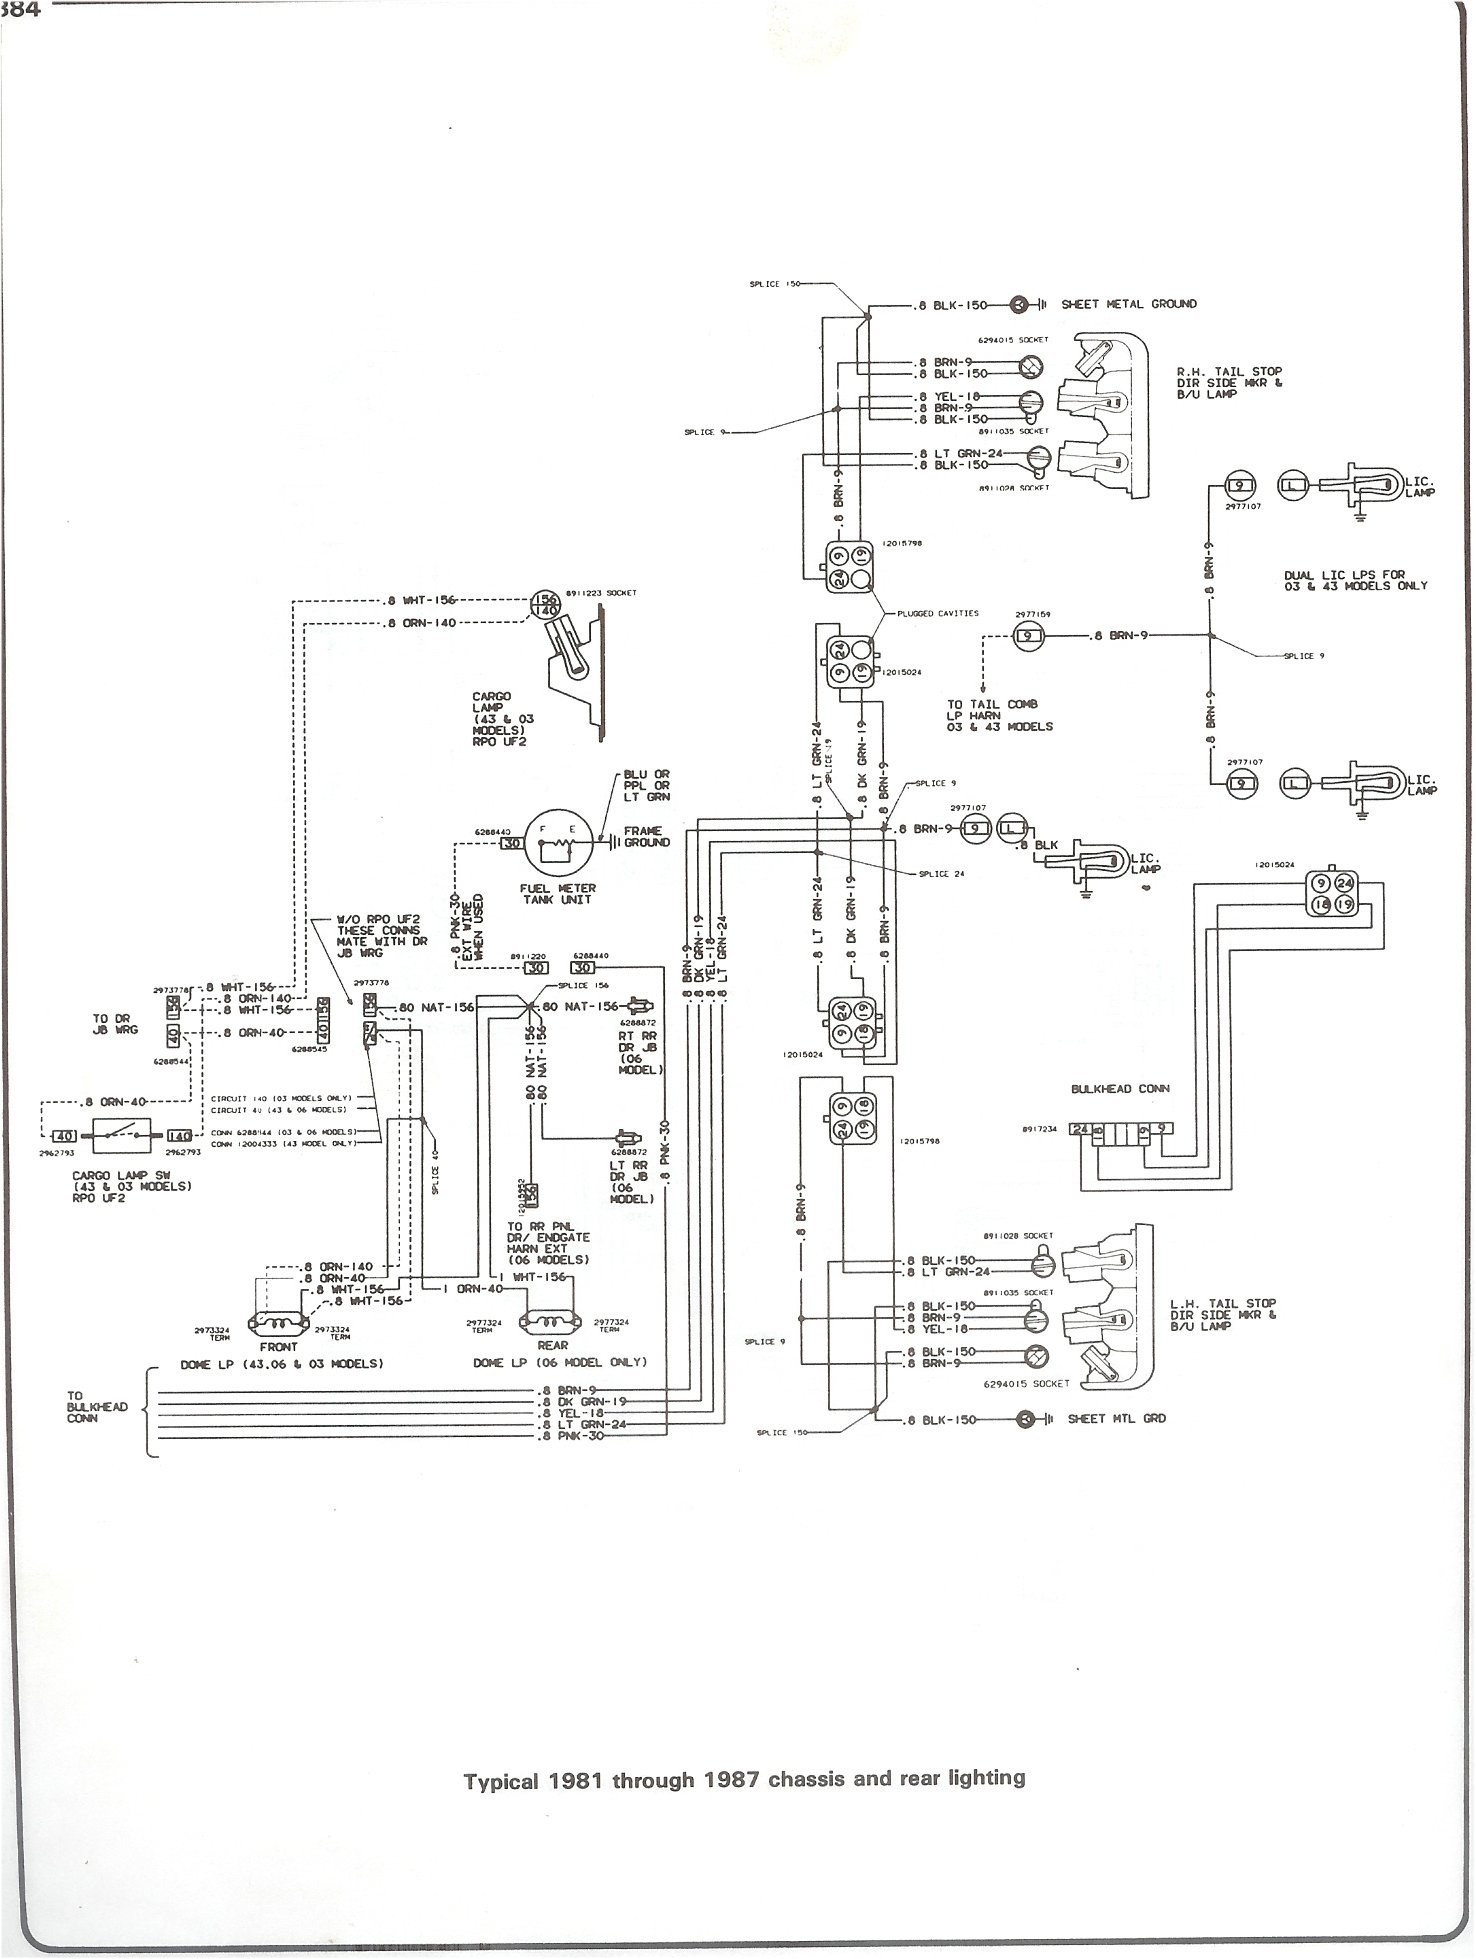 1986 Chevy Truck Fuse Box Diagram 1987 Ford Ranger 20 L4 Gas Wiring 4x4 87 In Addition Mitsubishi Galant